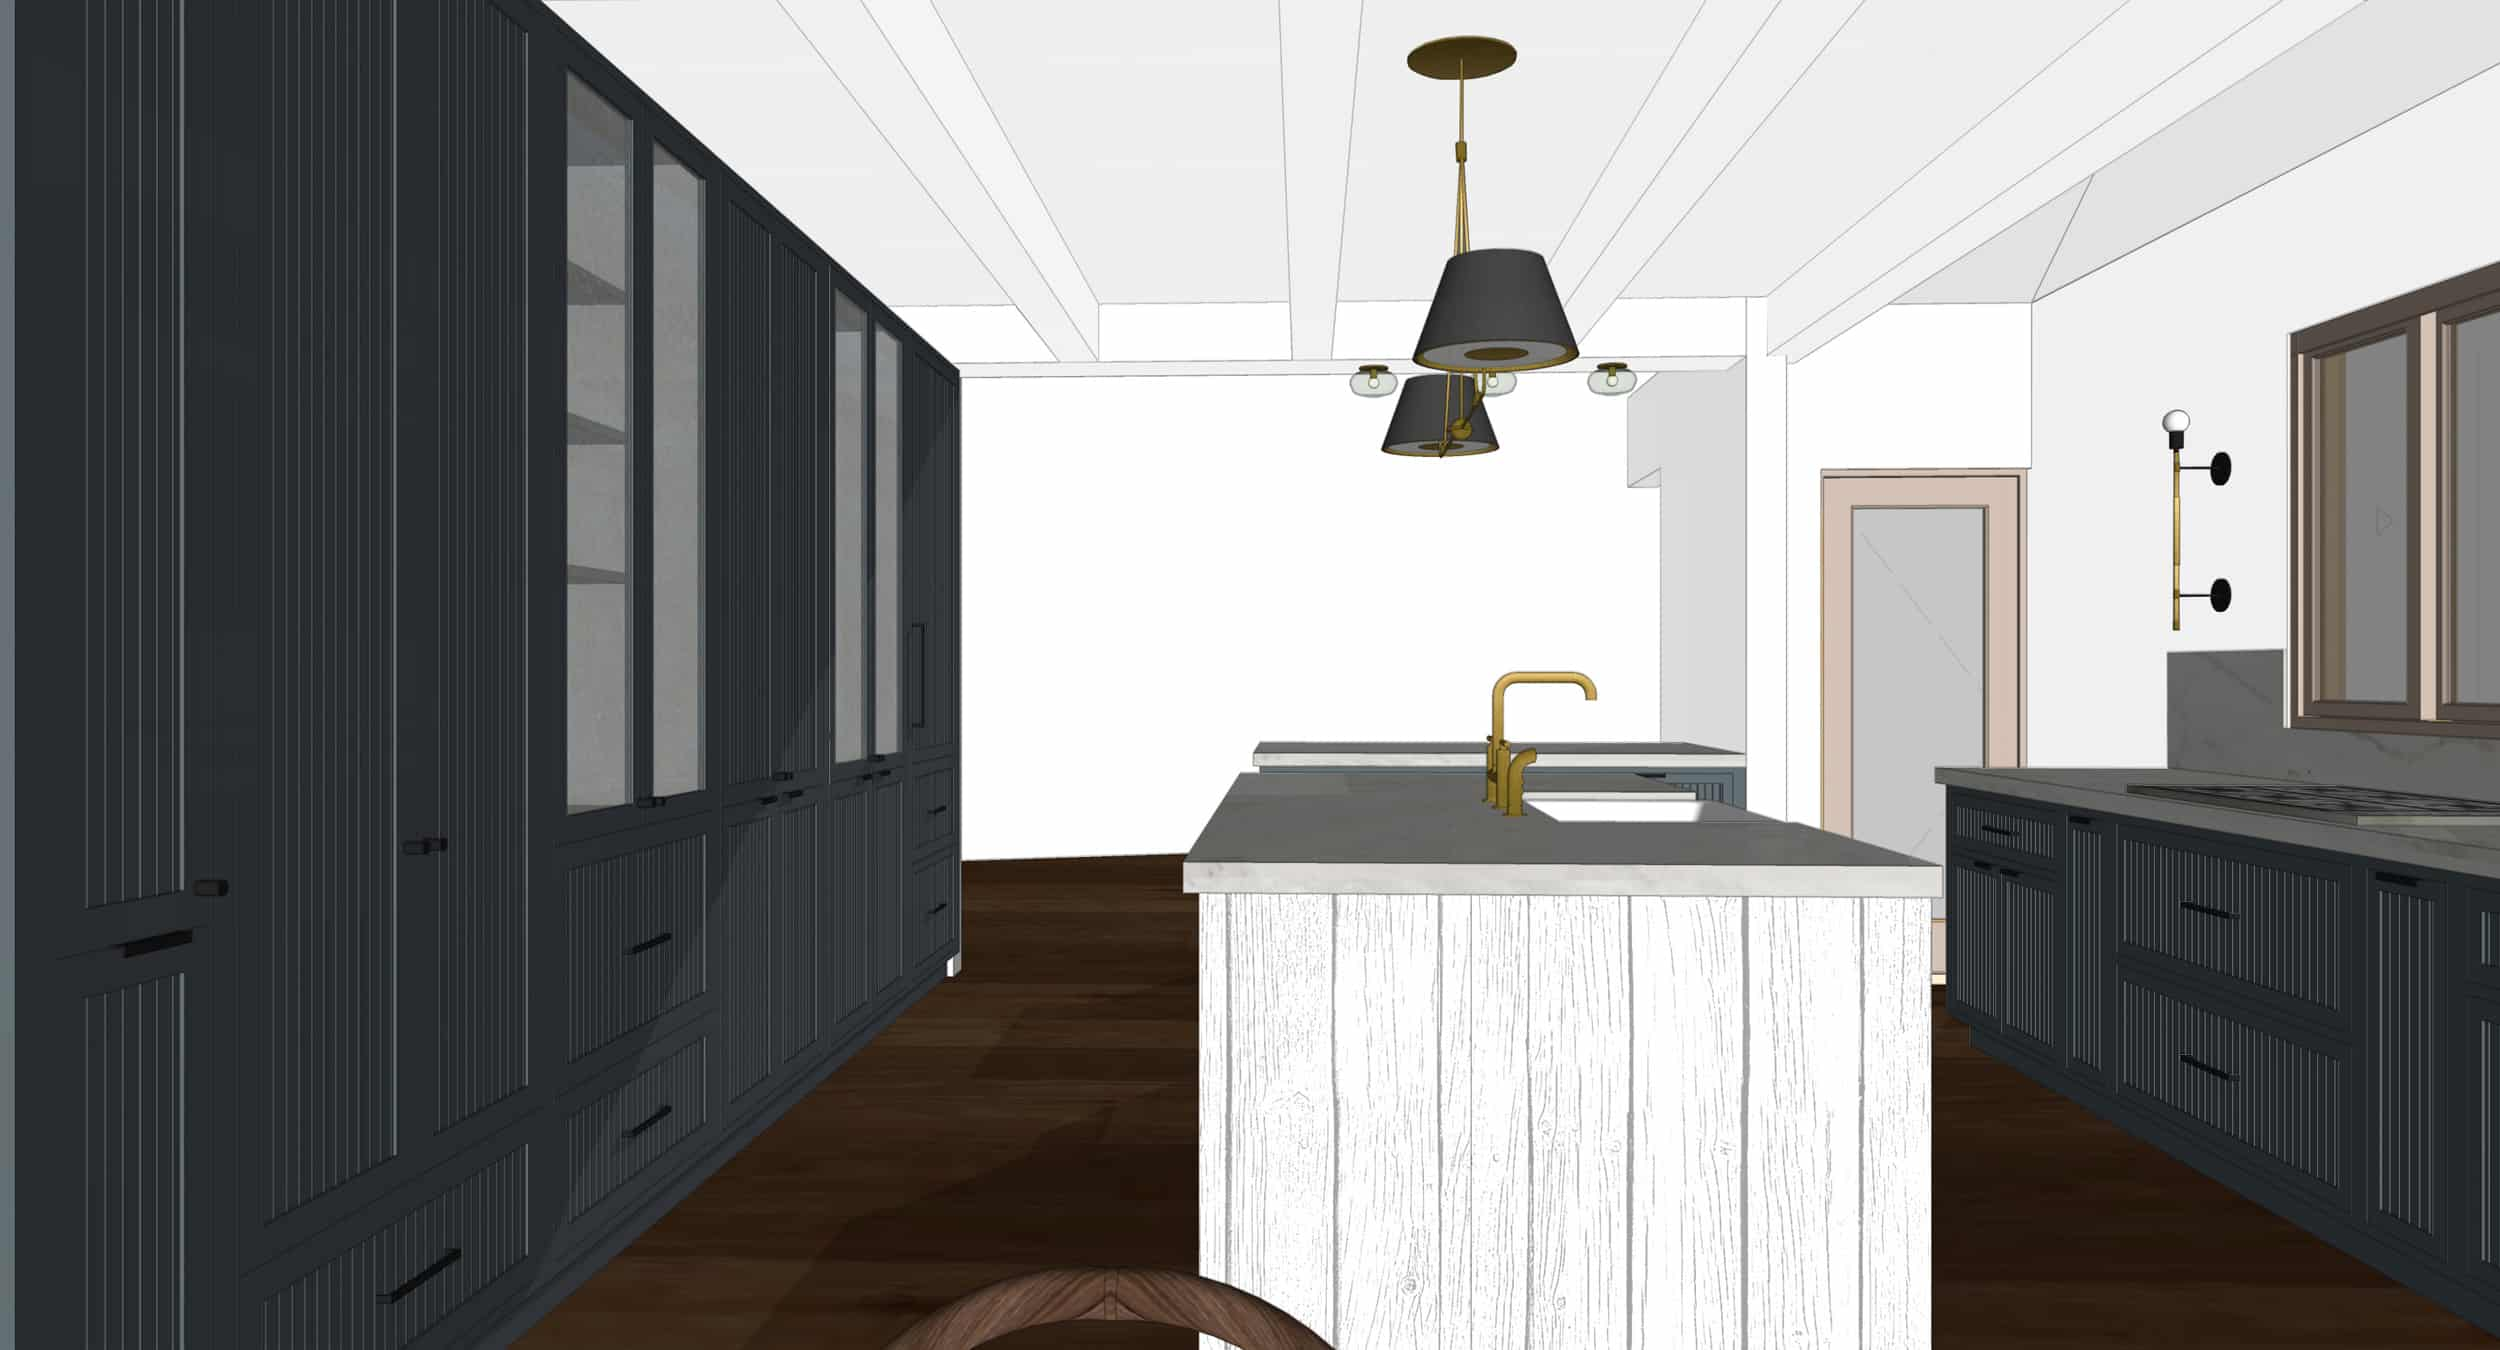 Emily Henderson Mountain Fixer Upper I Design You Decide Kitchen Render 06 6.20.18